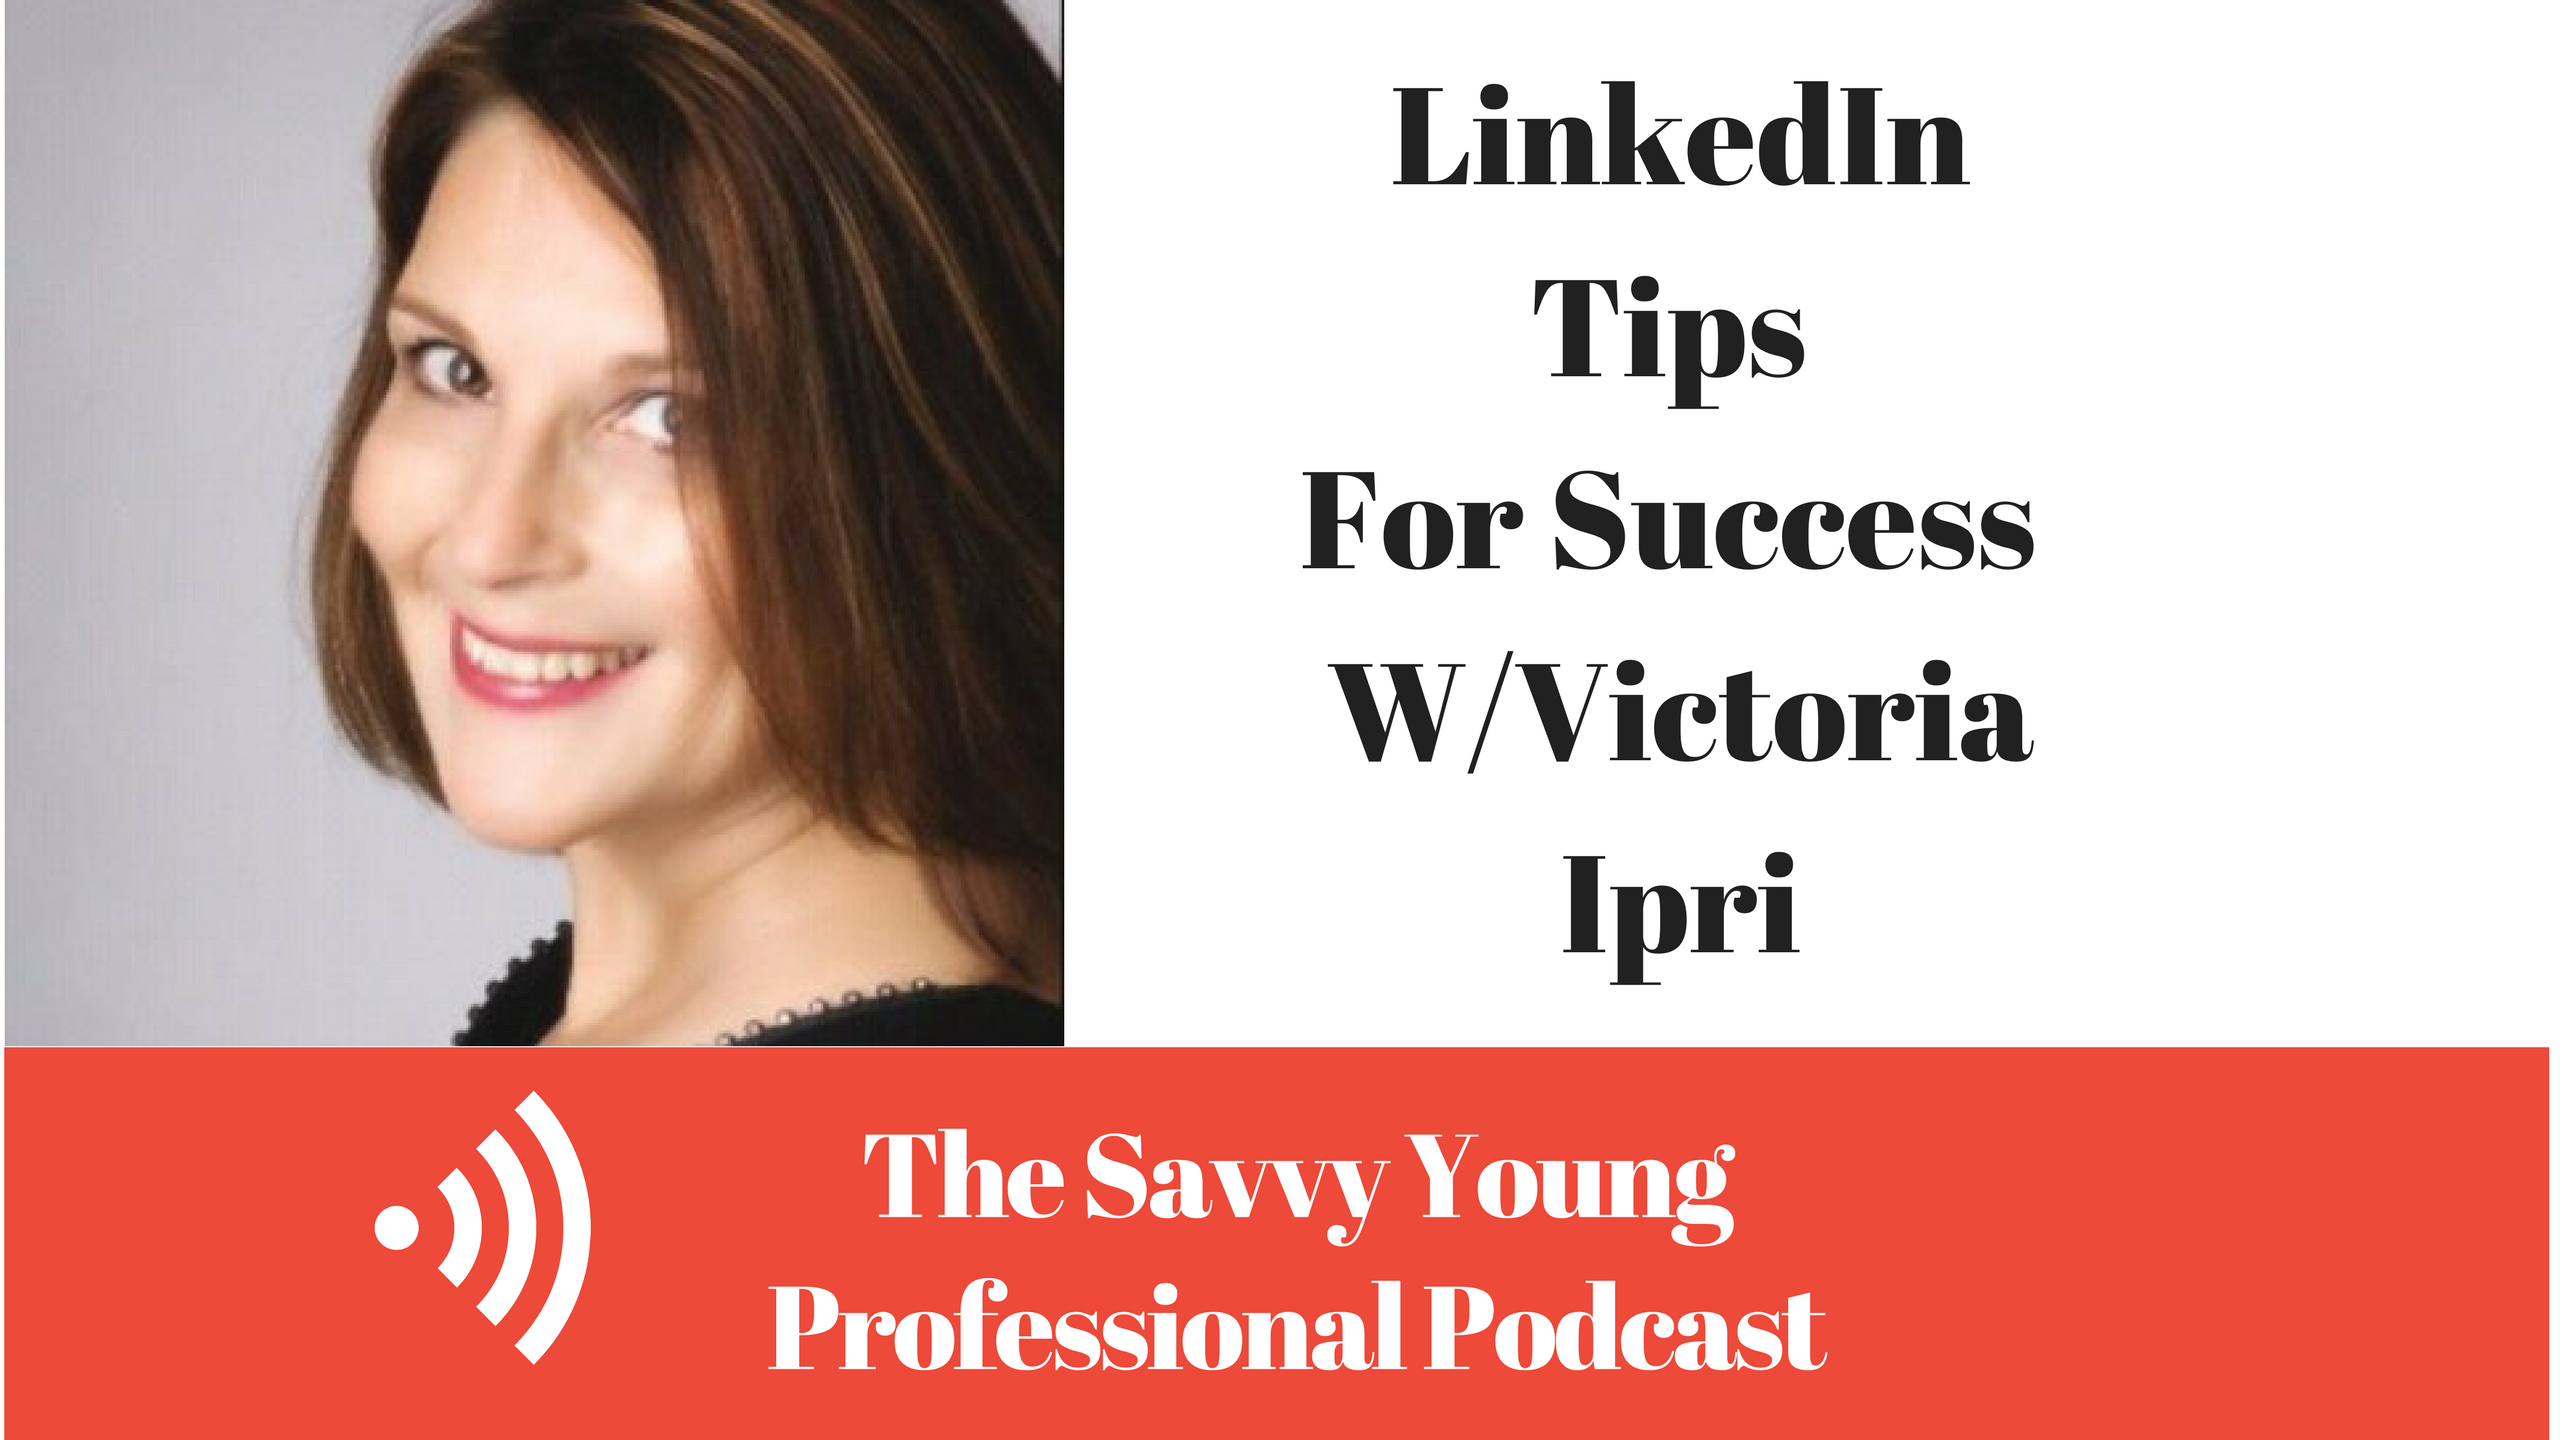 podcast-linkedin-tips-to-get-noticed-w-victoria-ipri